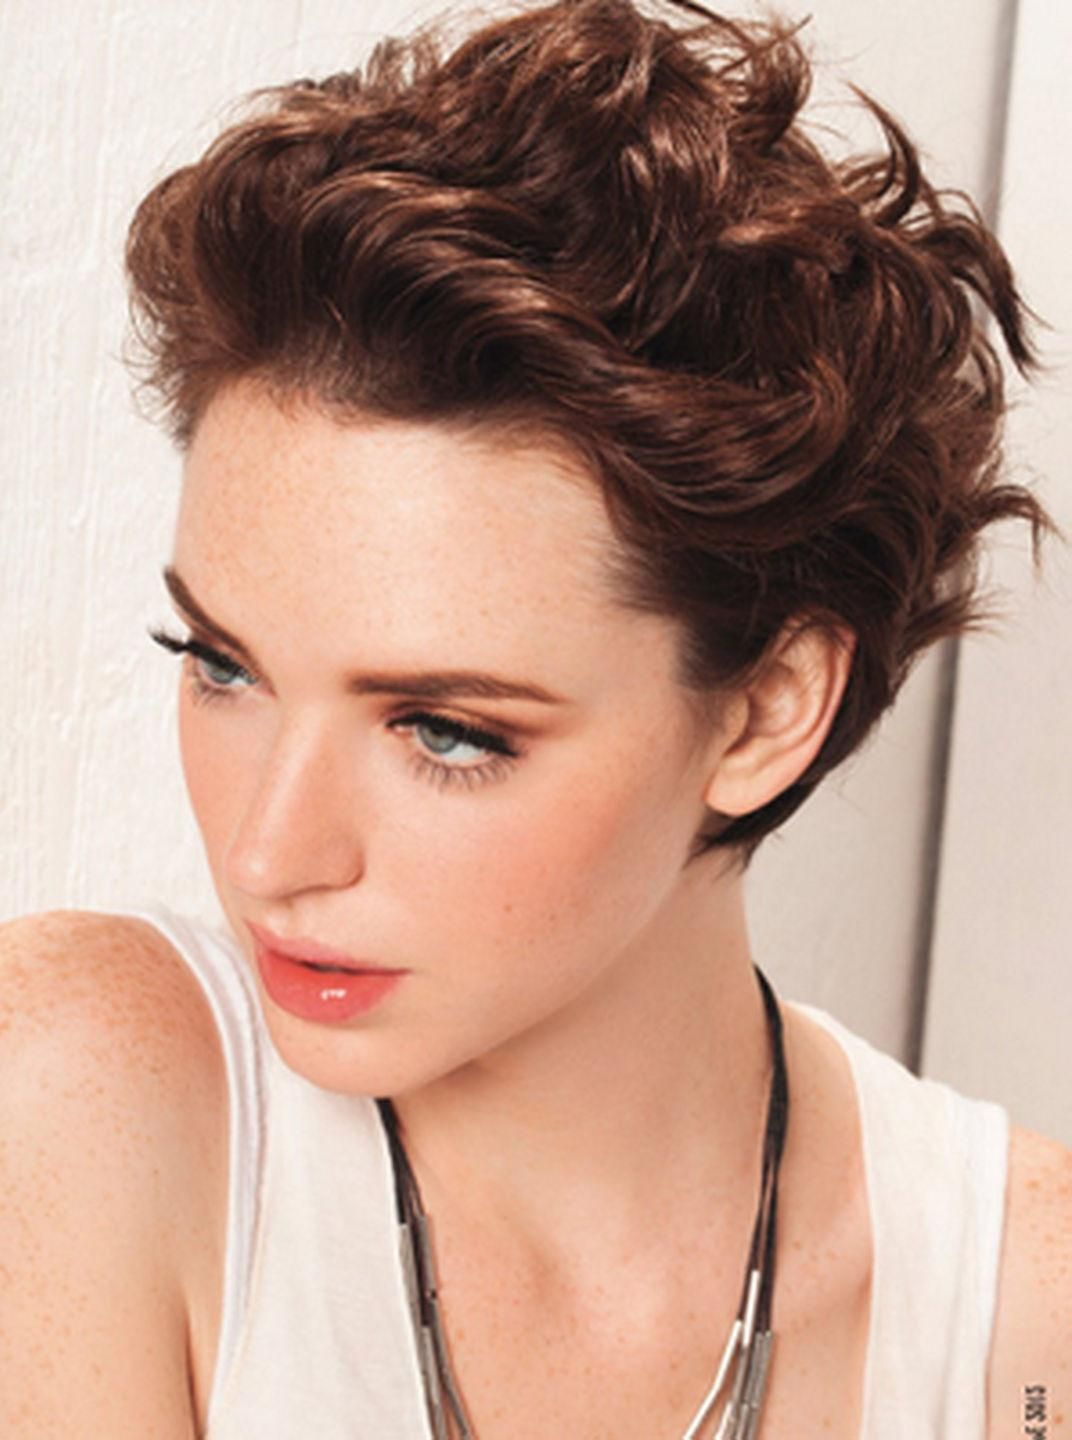 Short Hairstyles For Curly Hair And Oval Face Cute Short Hairstyles